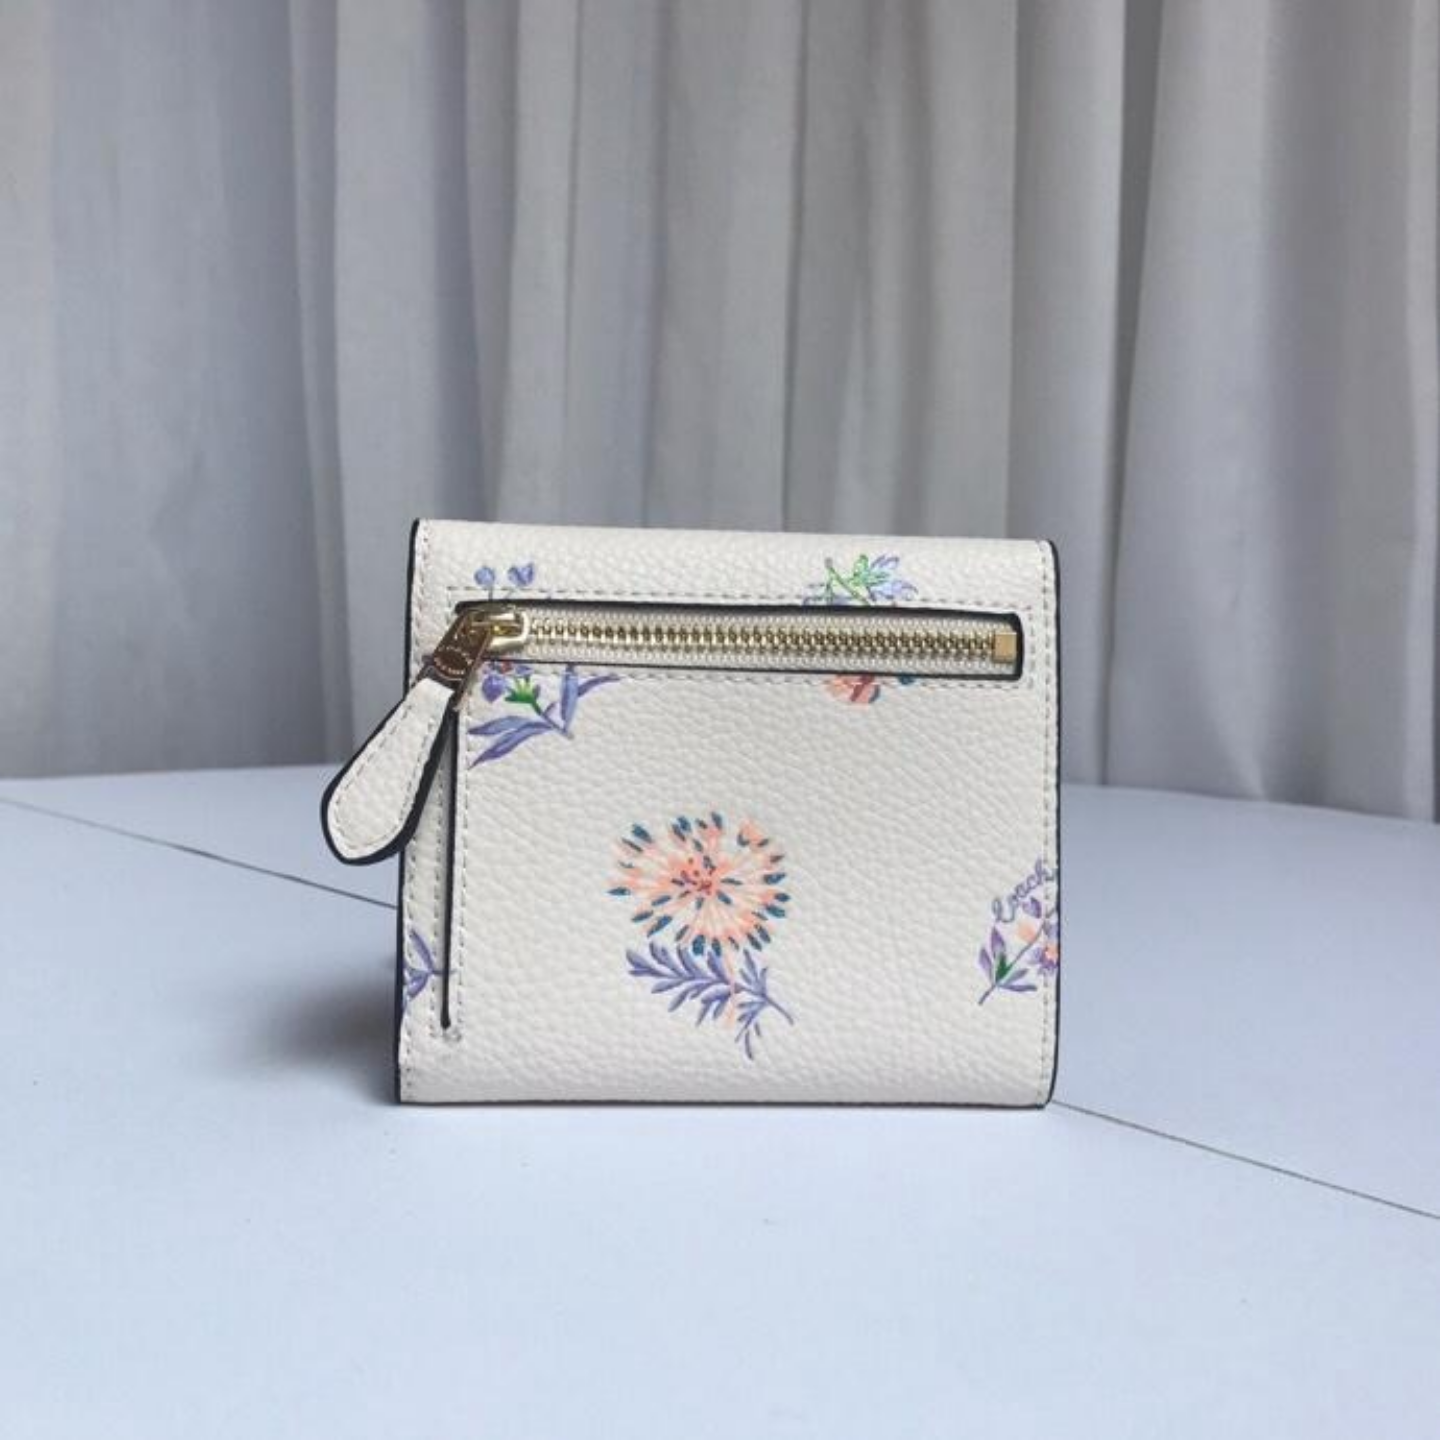 (SG COD) Women's wallet and card holder F69849 short wallet